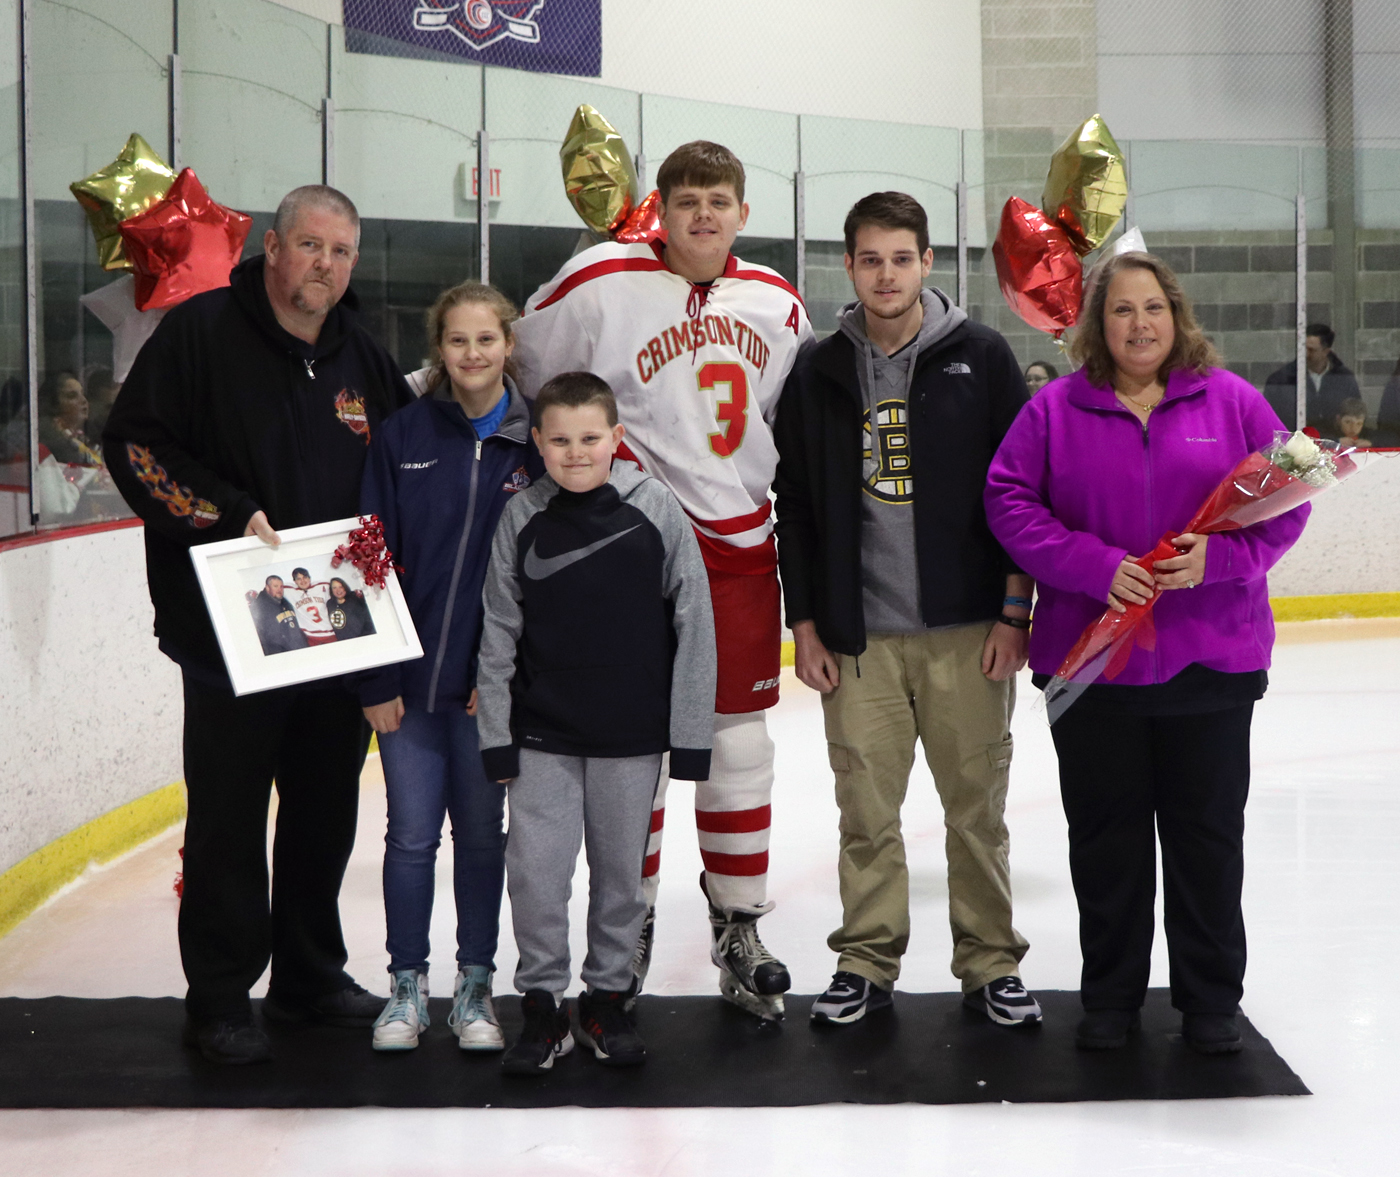 #3 Asst. Captain Ryan Colman with his parents, Kim and Ronald; brothers, Corey and Ronald; and sister, Jessica